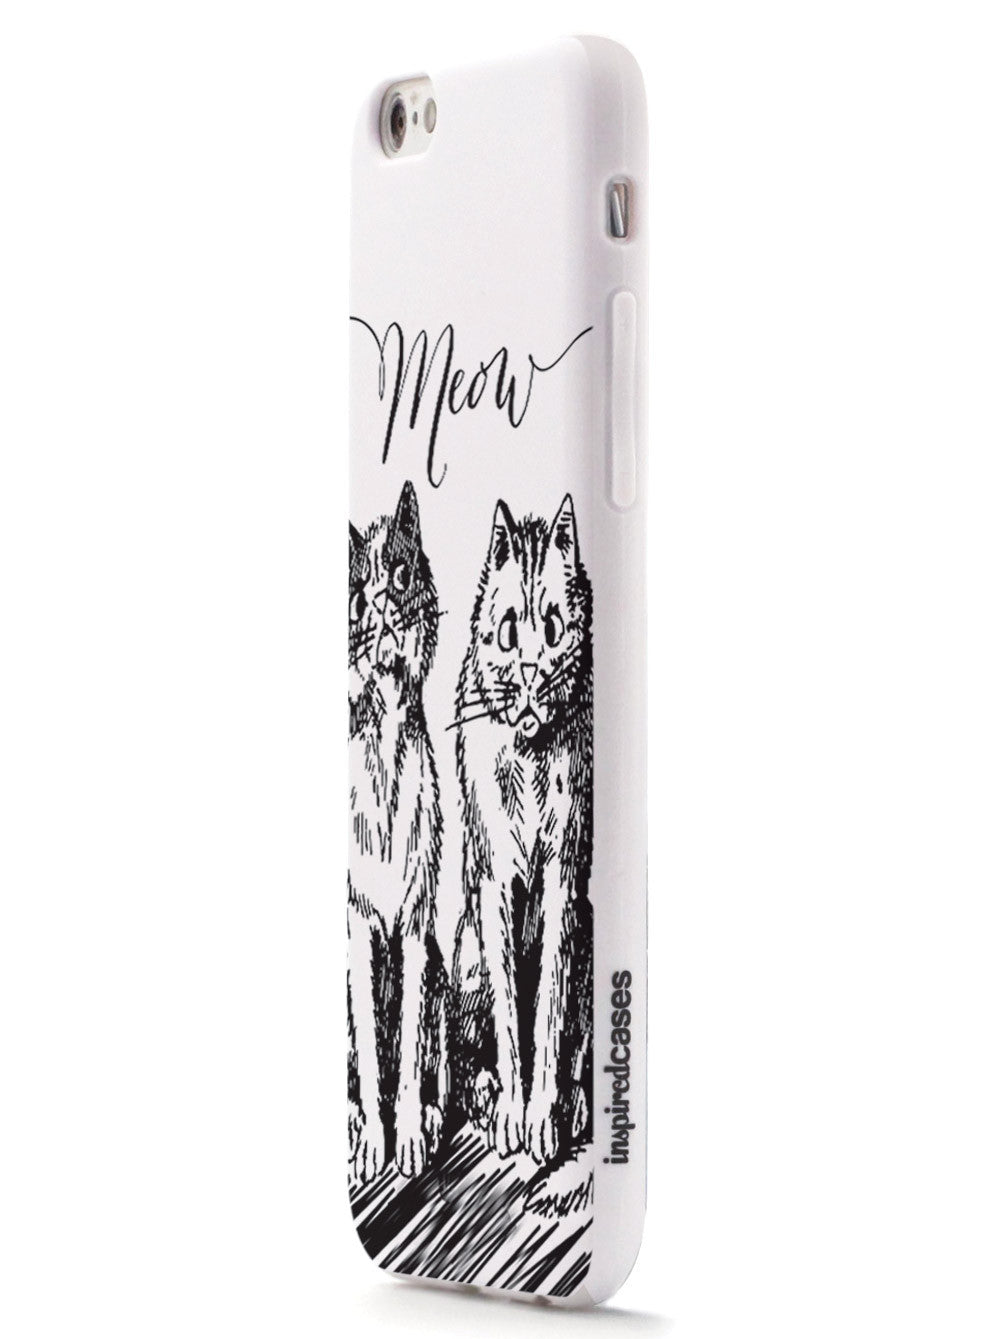 Meow! Sketchy Kitties Cat Case